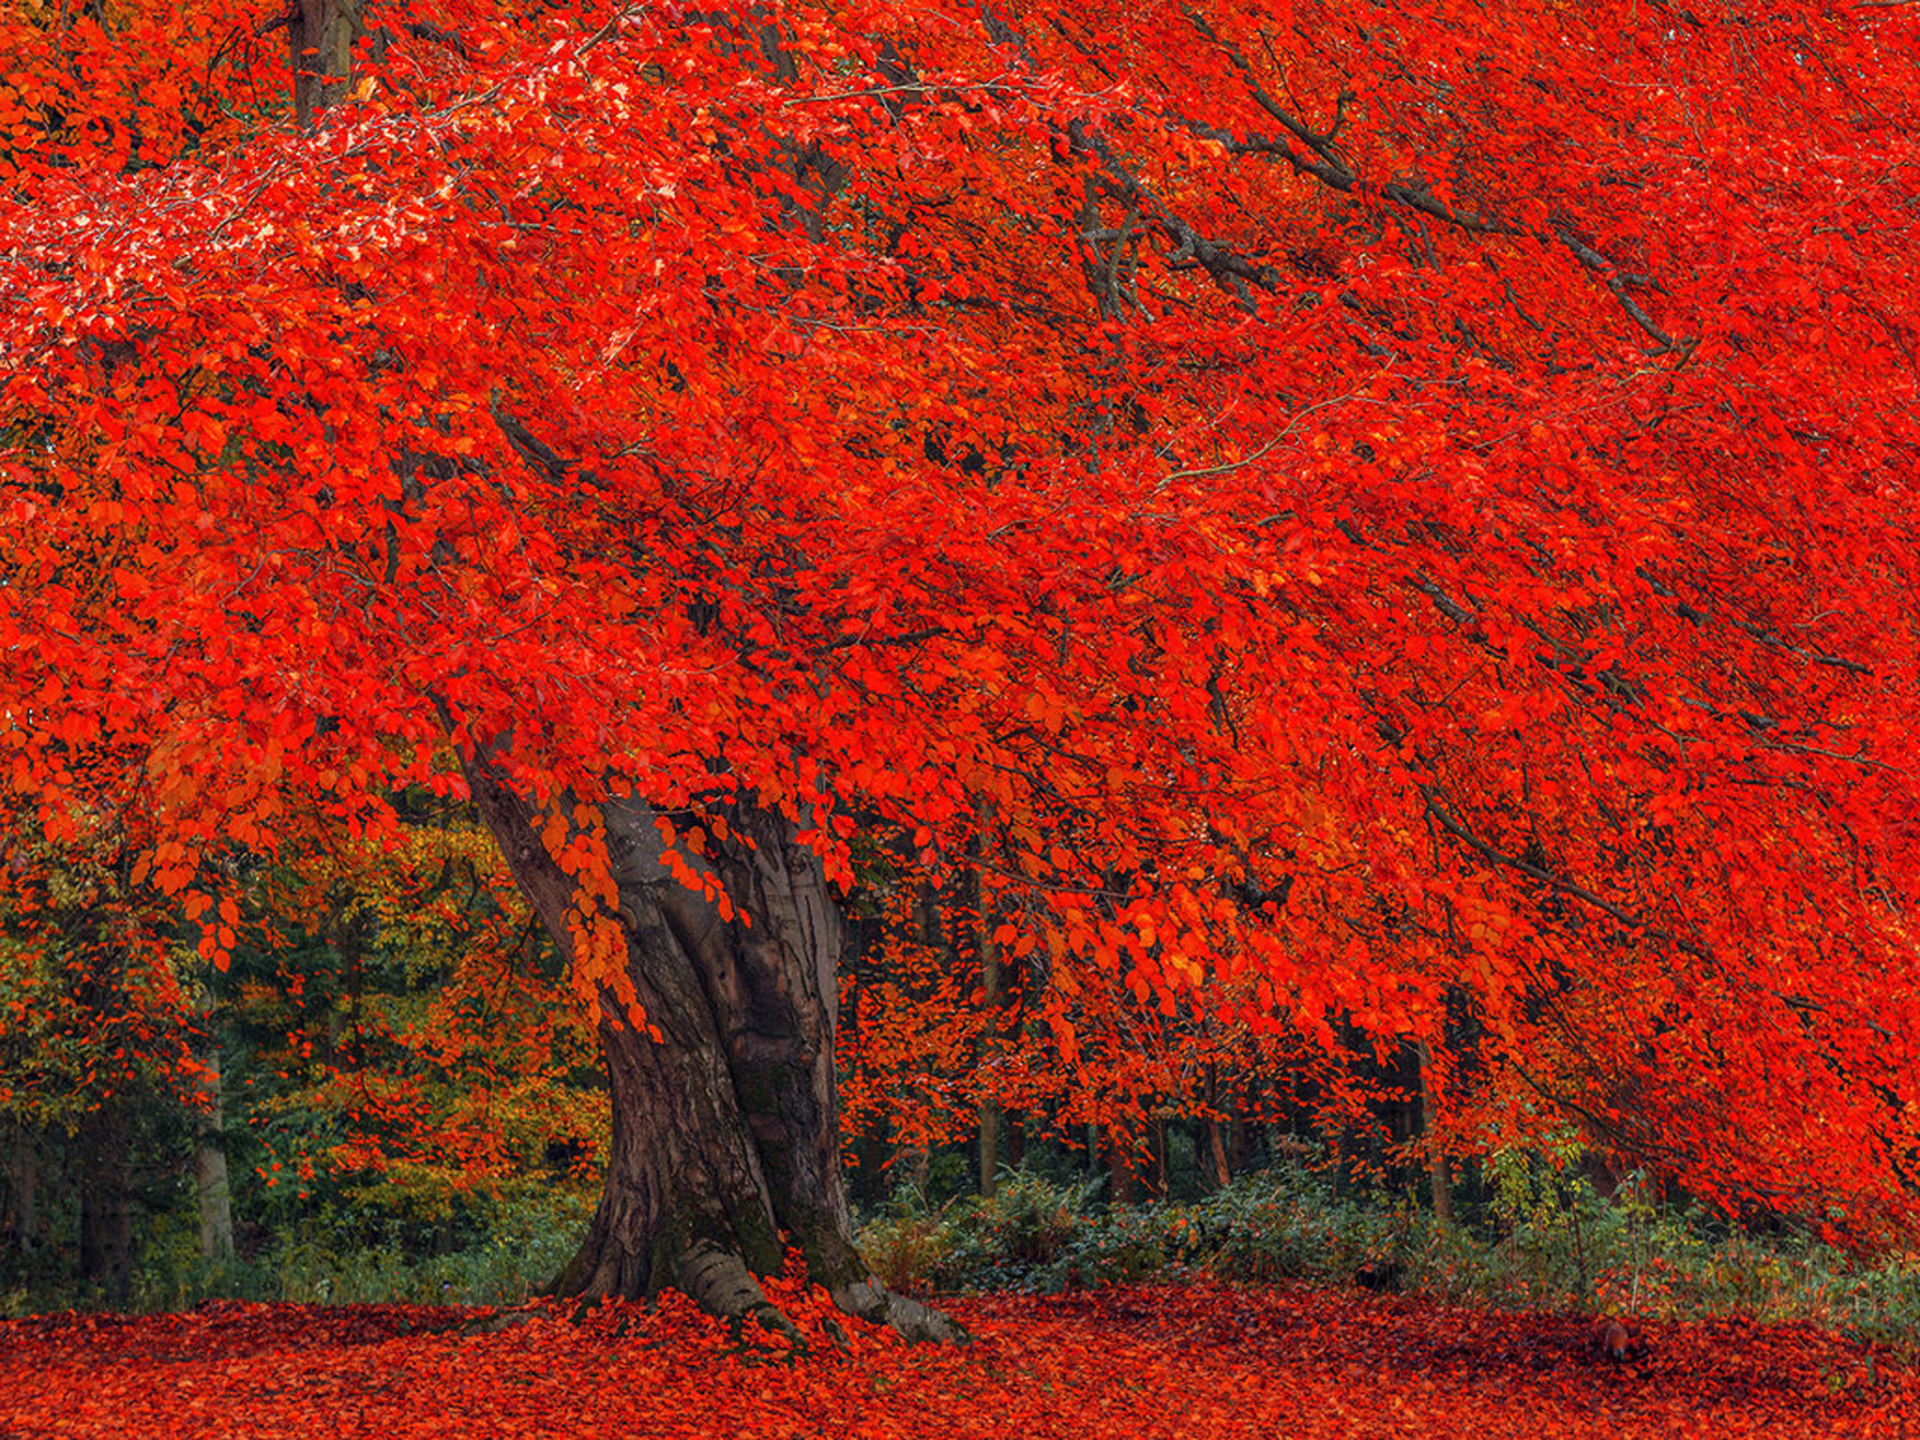 Fall High Definition Wallpapers Luminous Red Autumn Tree Wallpapers Luminous Red Autumn